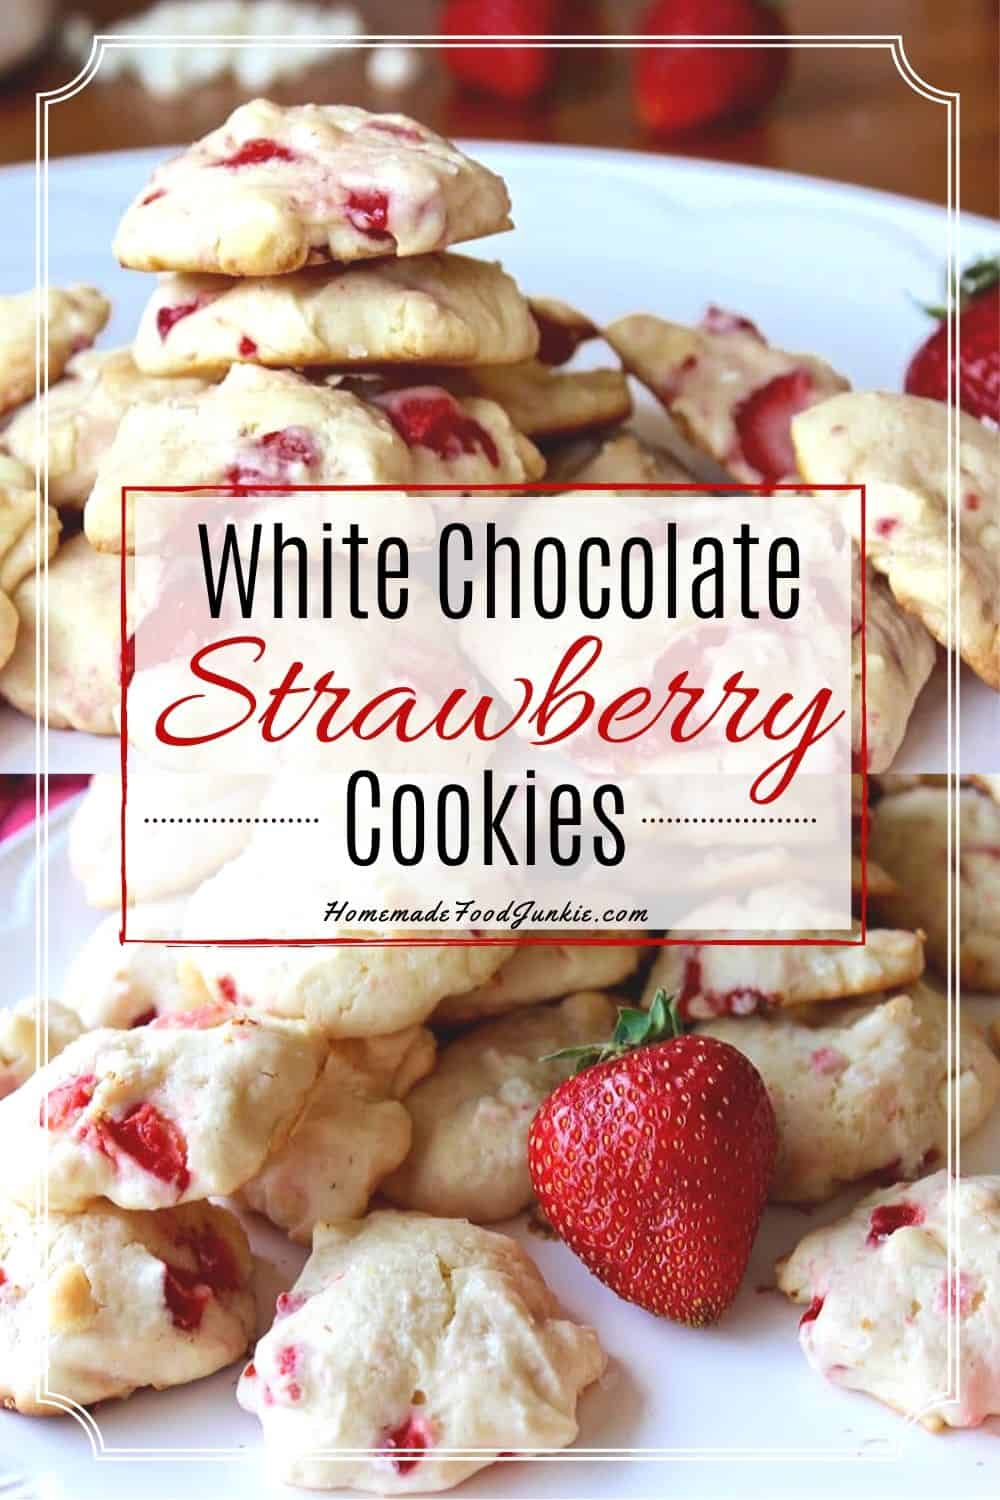 White Chocolate Strawberry Cookies-pin image